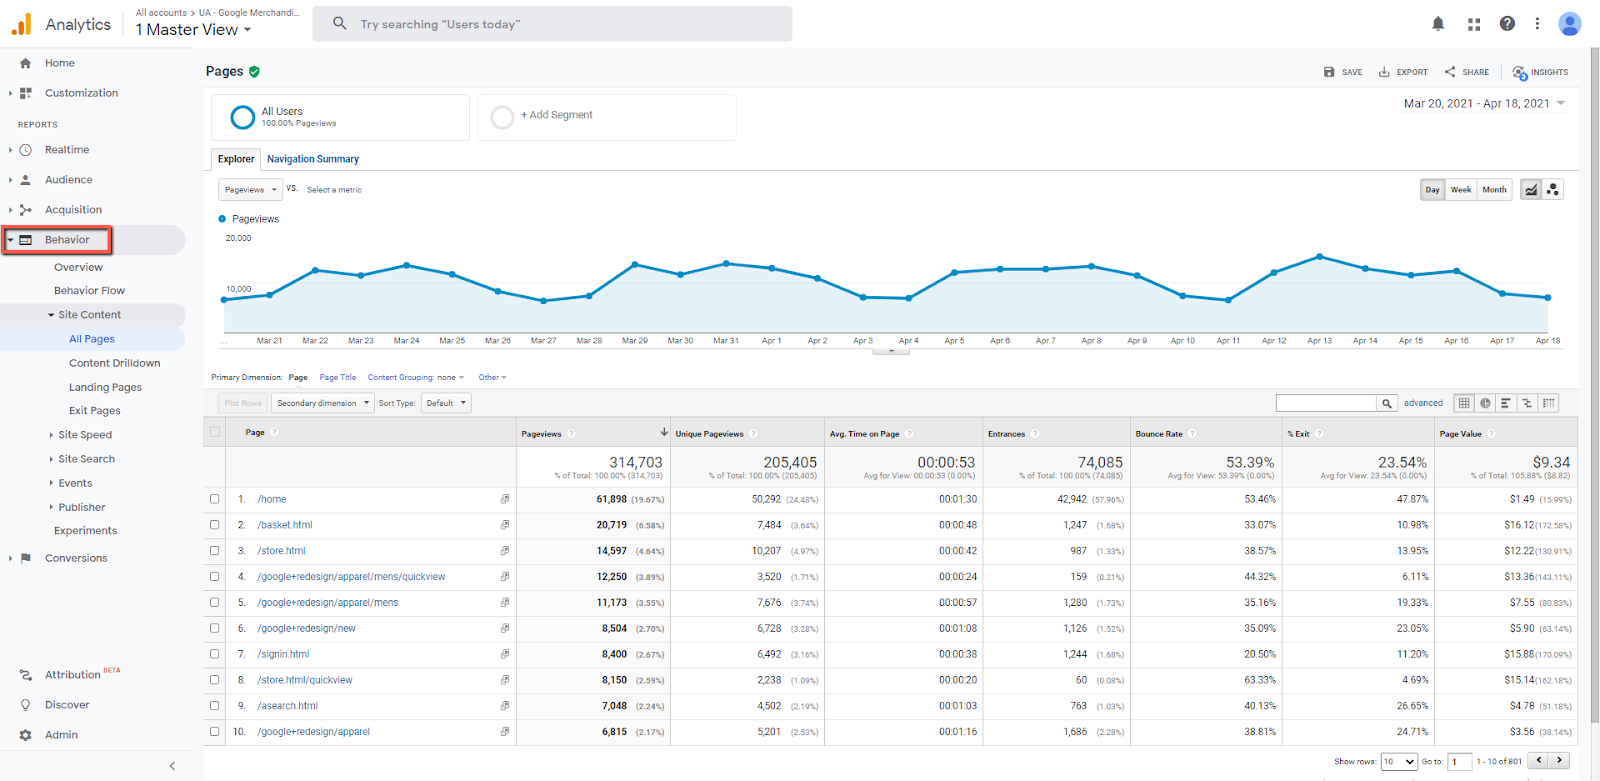 Screenshot of Page Metrics in Google Analytics